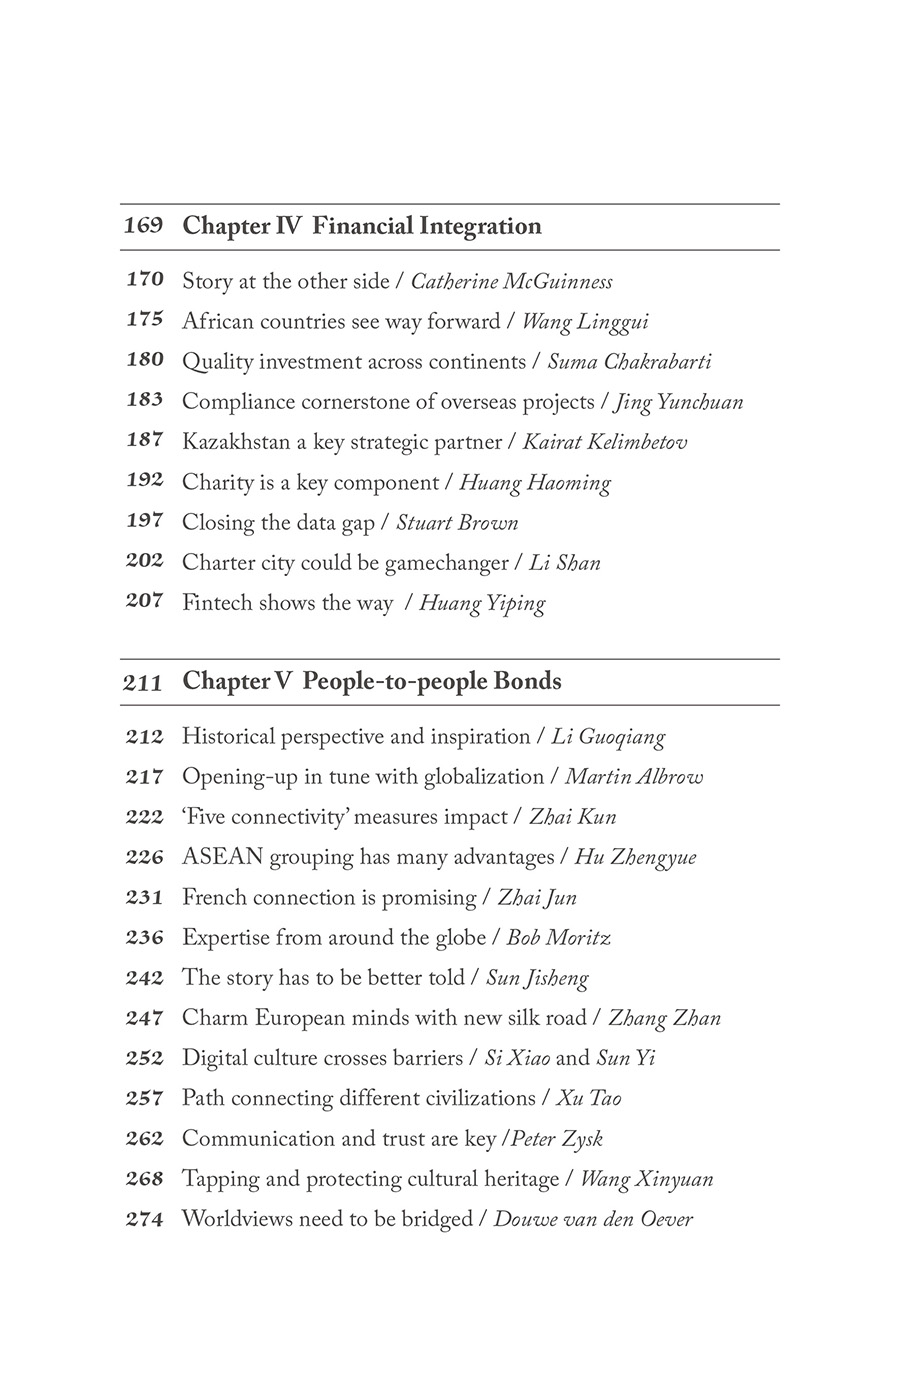 Table of contents: Common Prosperity: Global Views on Belt and Road Initiative (ISBN:9787508541297)